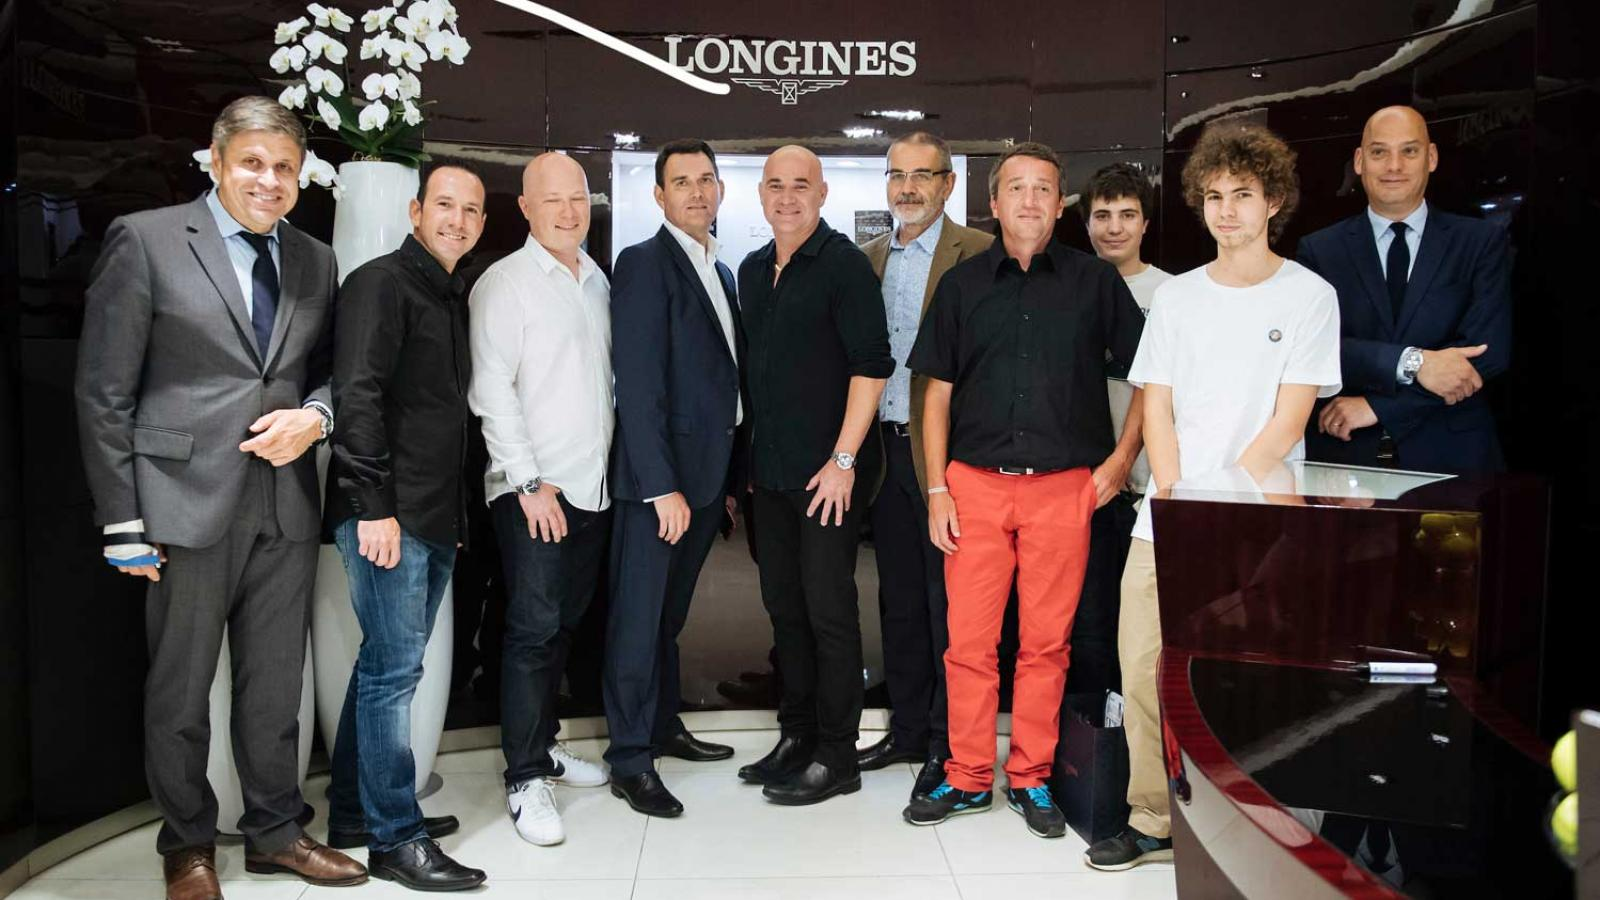 Andre Agassi celebrates his 10-year anniversary as a Longines Ambassador of Elegance